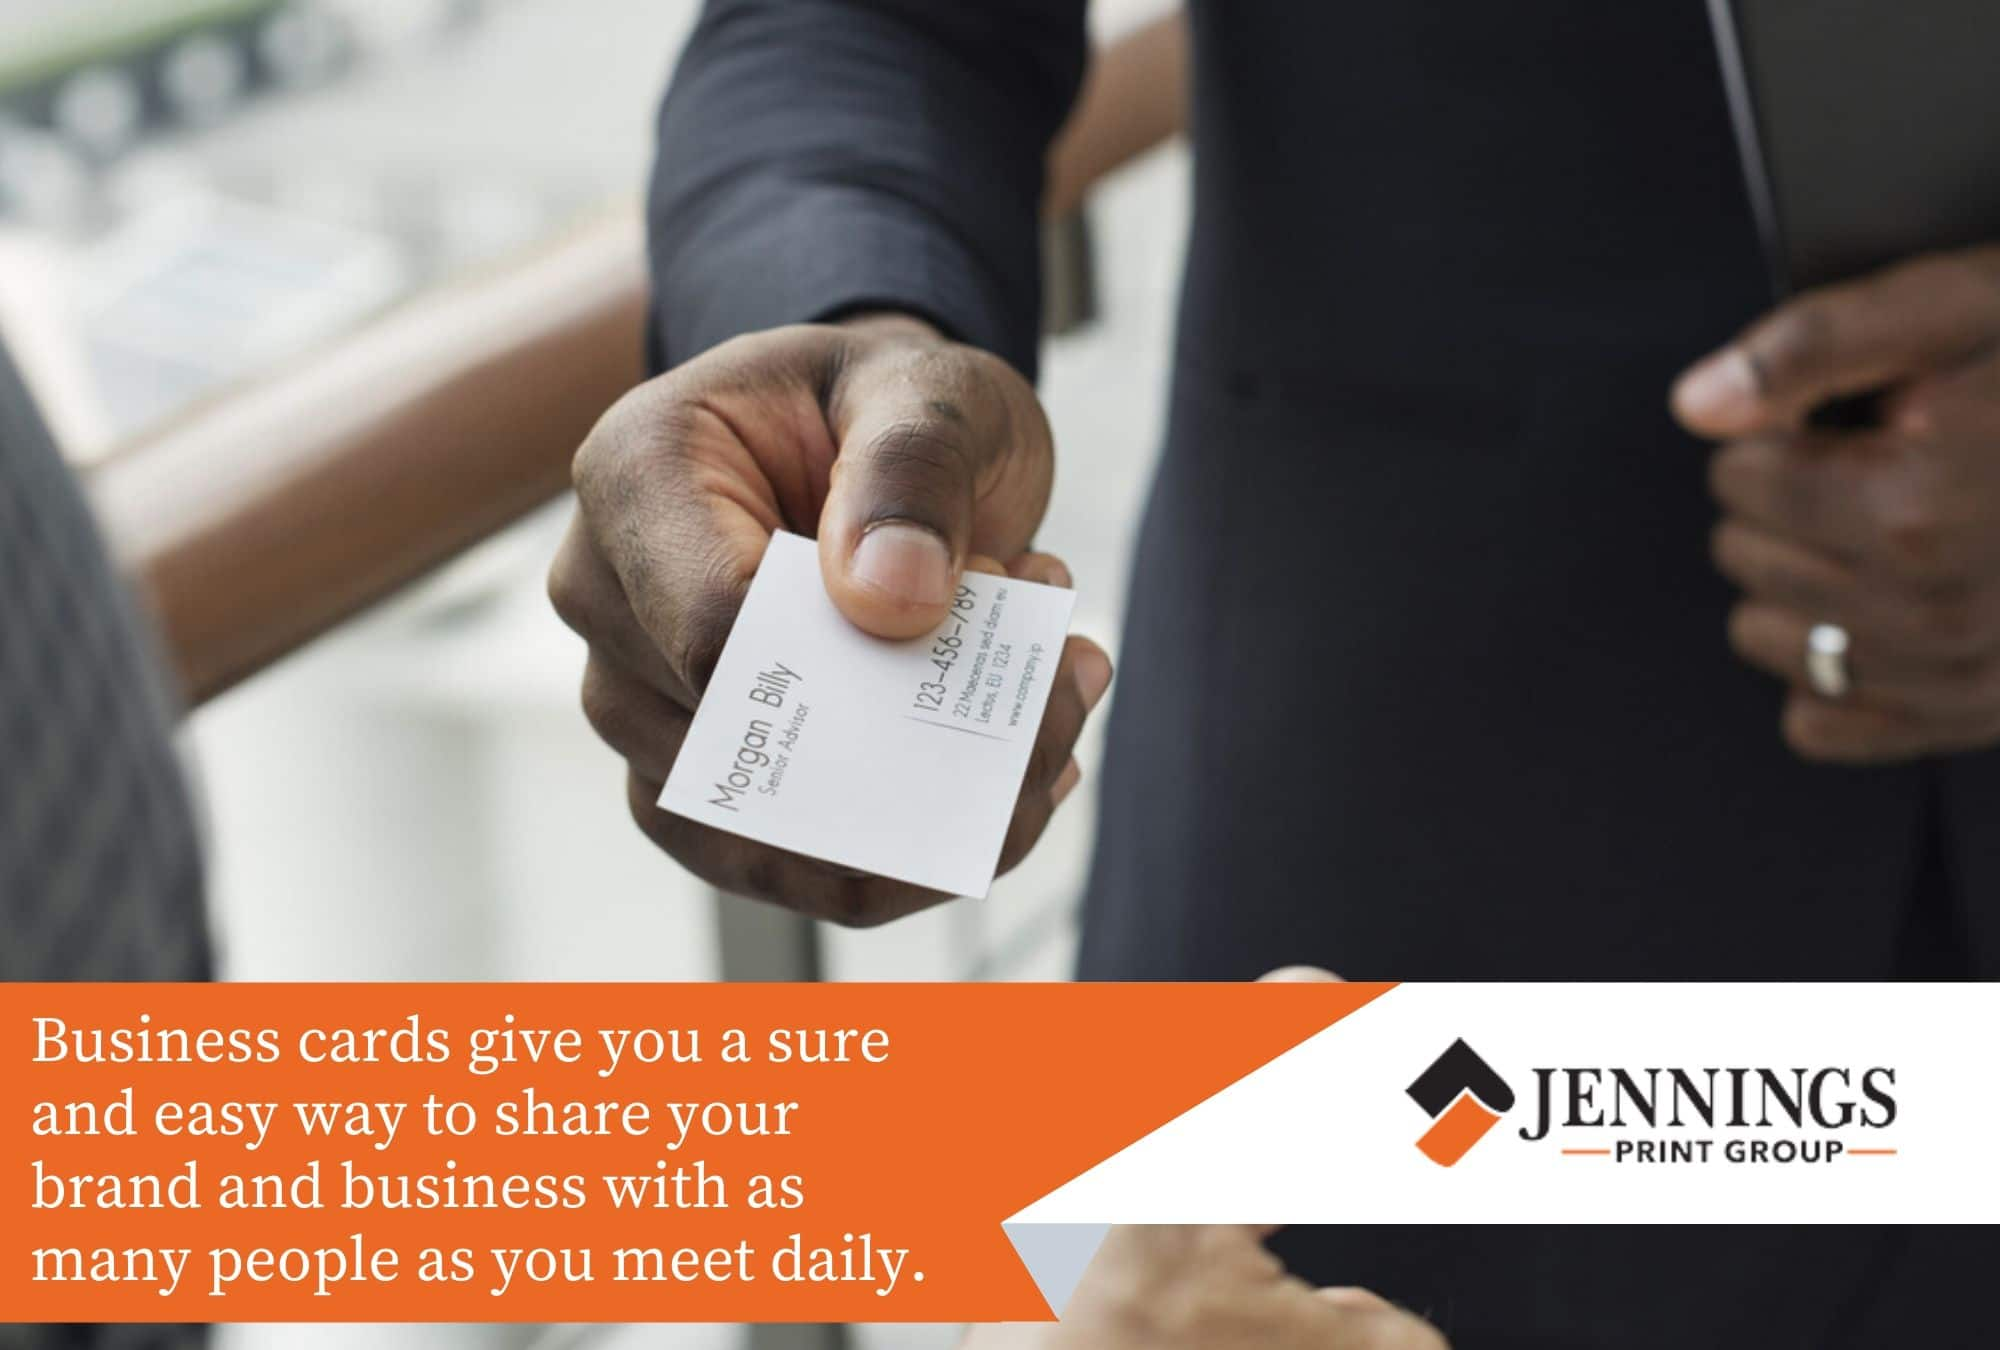 business cards are an easy and sure way to share your brand